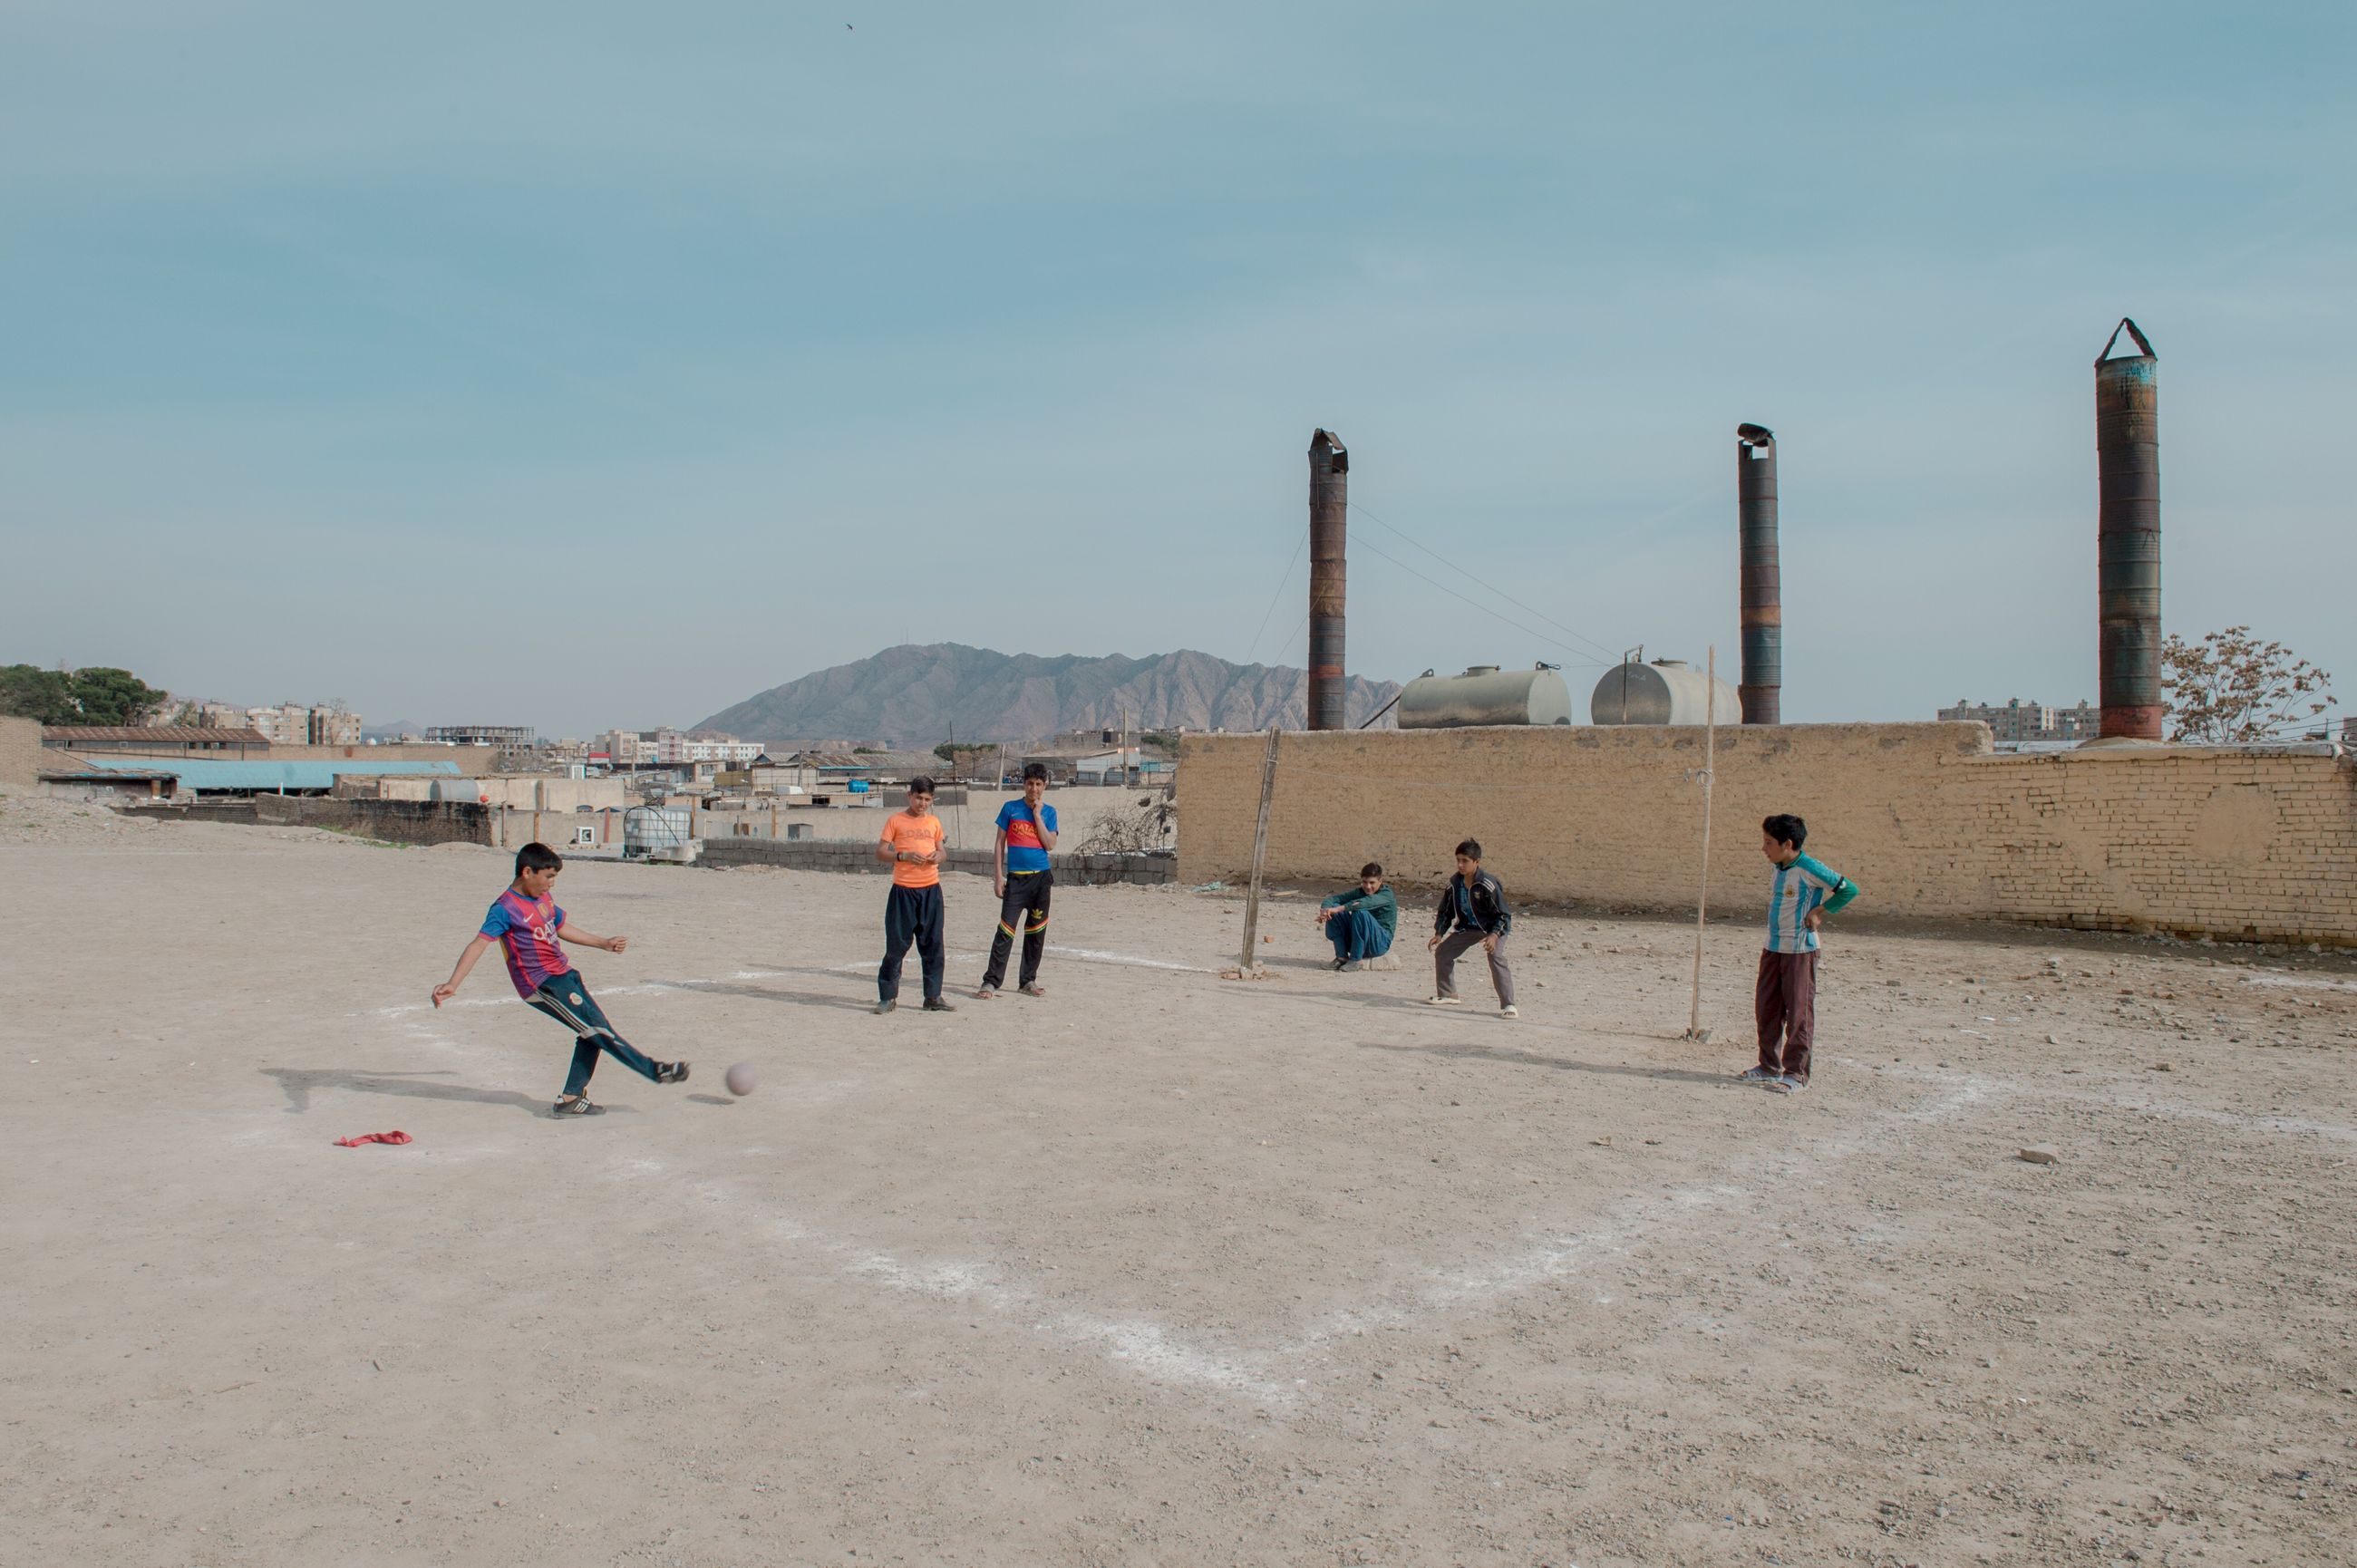 real people, day, lifestyles, leisure activity, playing, outdoors, men, sky, mountain, nature, people